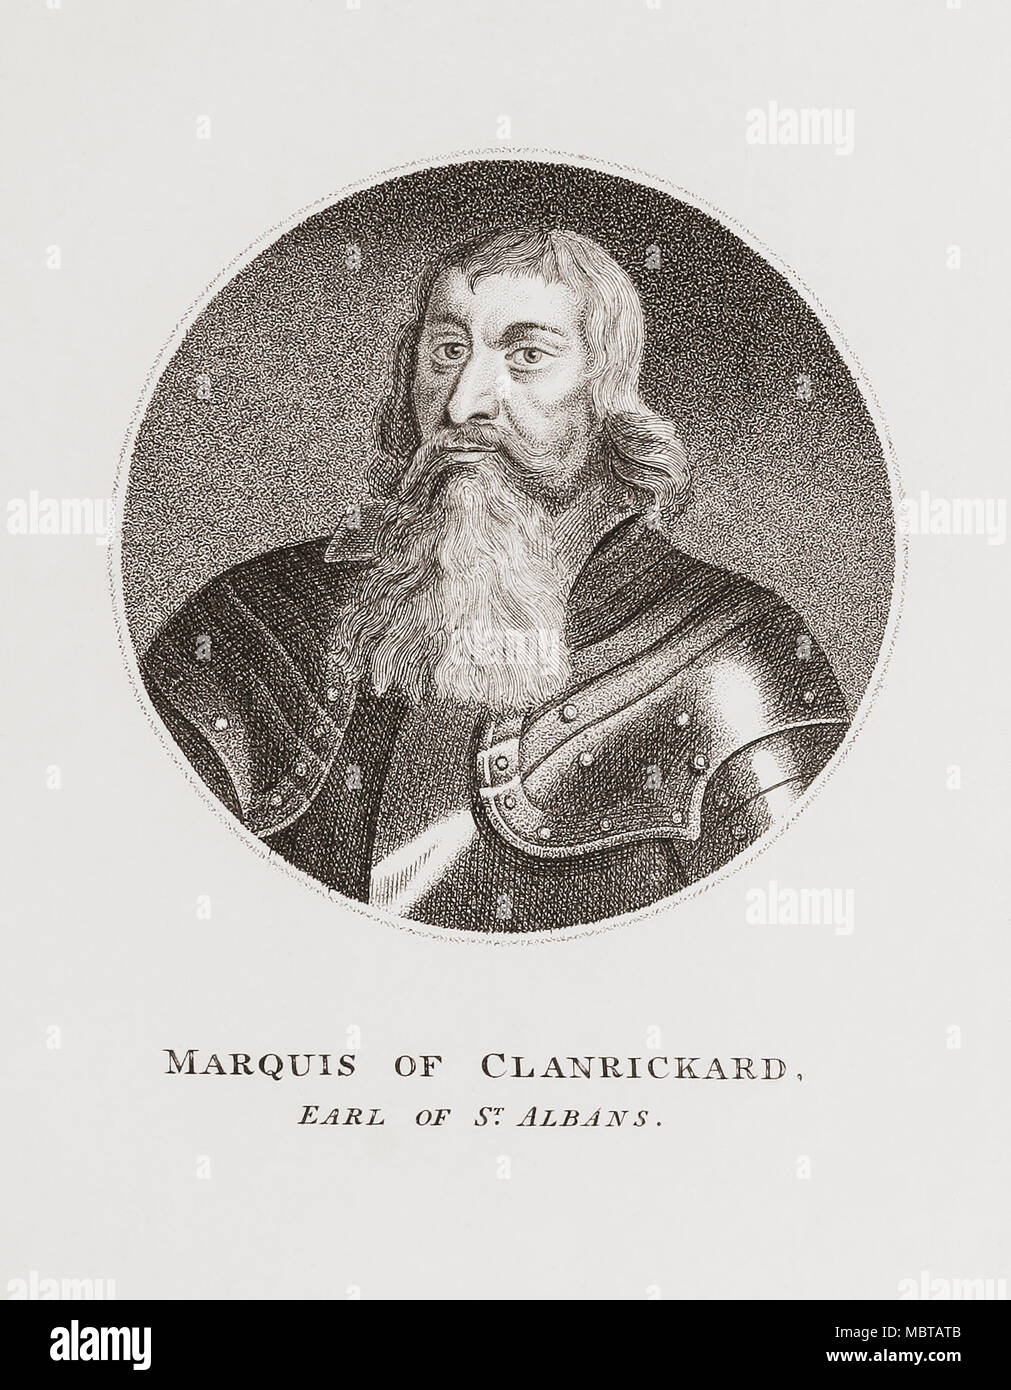 Ulick MacRichard Burke, 1st Marquess of Clanricarde, 5th Earl of Clanricarde, 2nd Earl of St Albans, 1604-1657.  Irish nobleman.  From Woodburn's Gallery of Rare Portraits, published 1816. - Stock Image